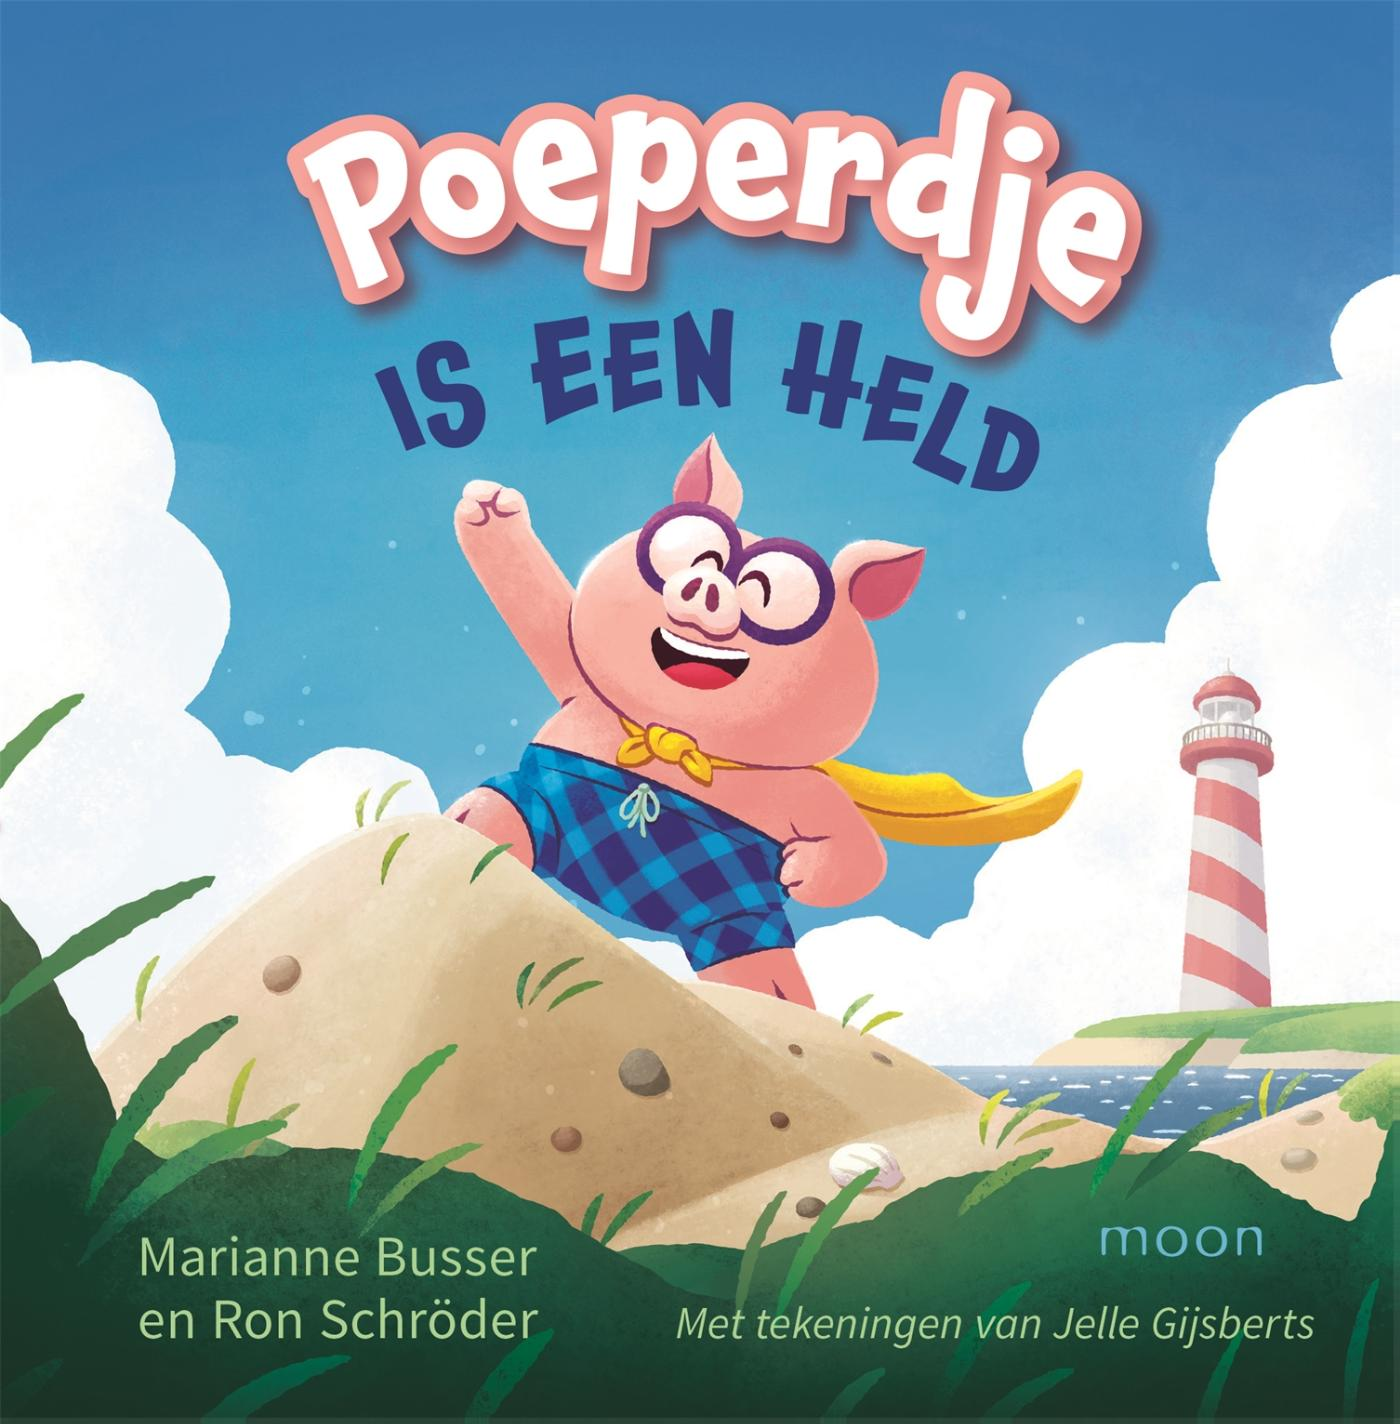 Cover Poeperdje is een held